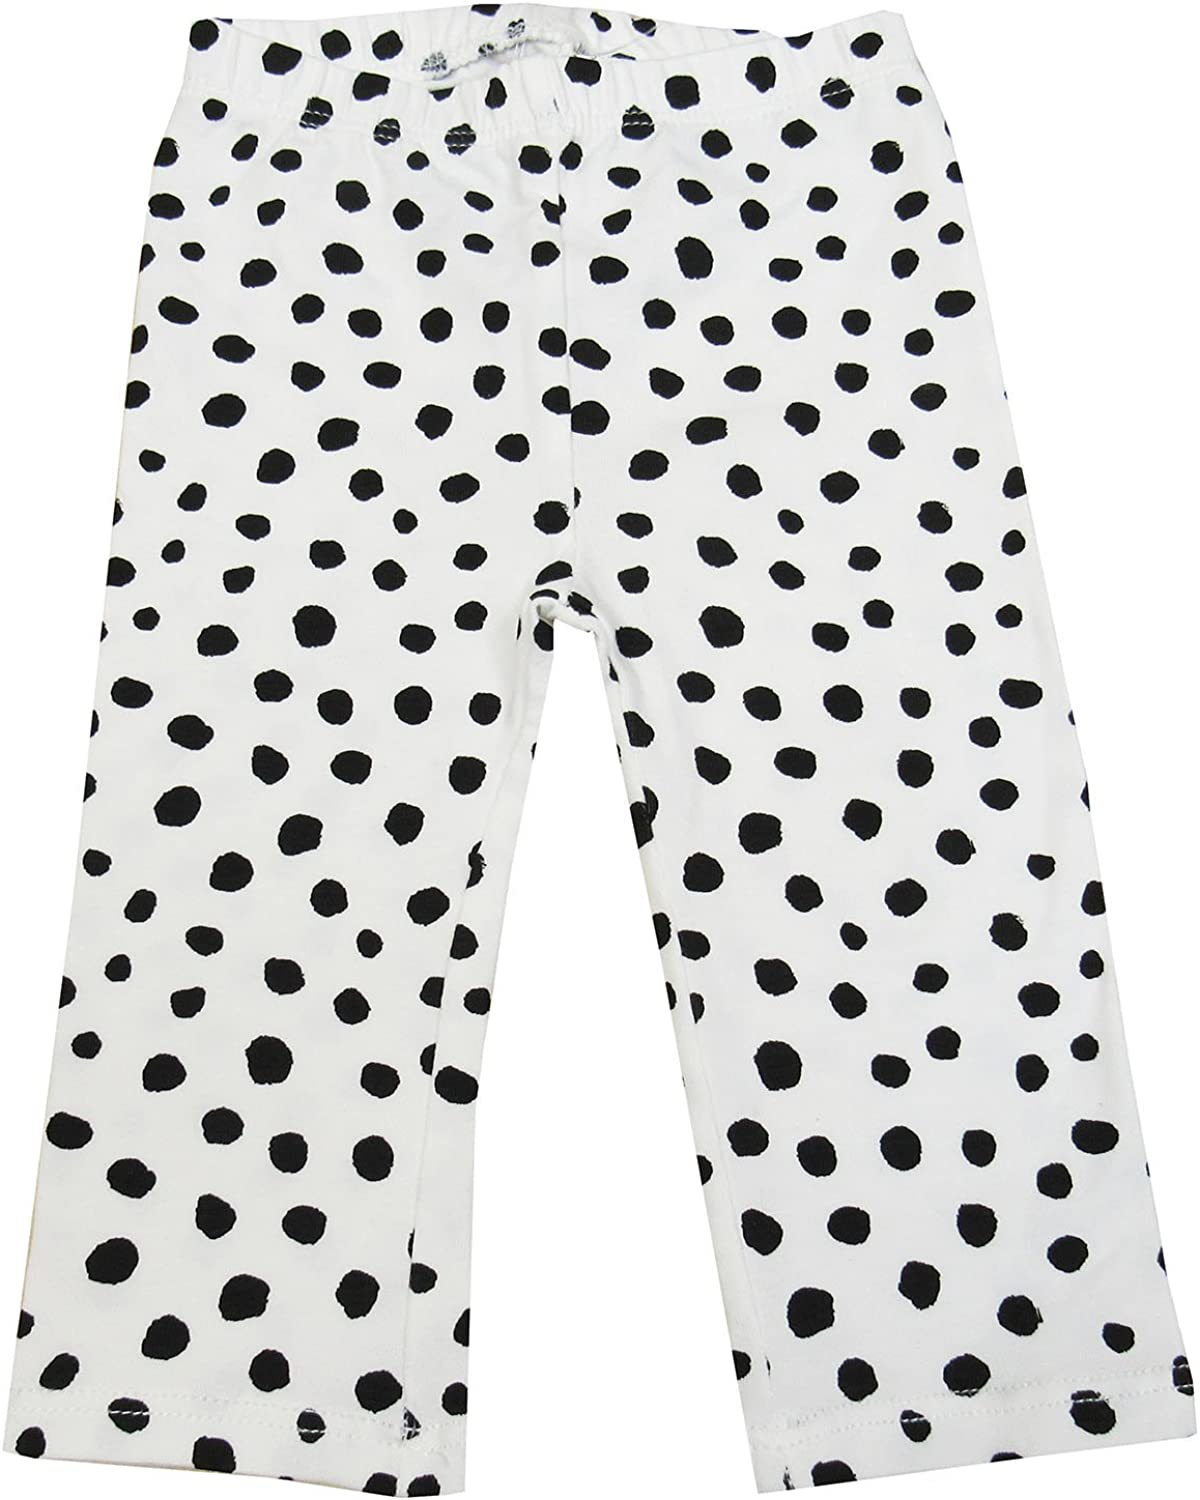 Polka Dot-Print Leggings Angel White 12 Months 0-24 Months First Impressions Baby Girls